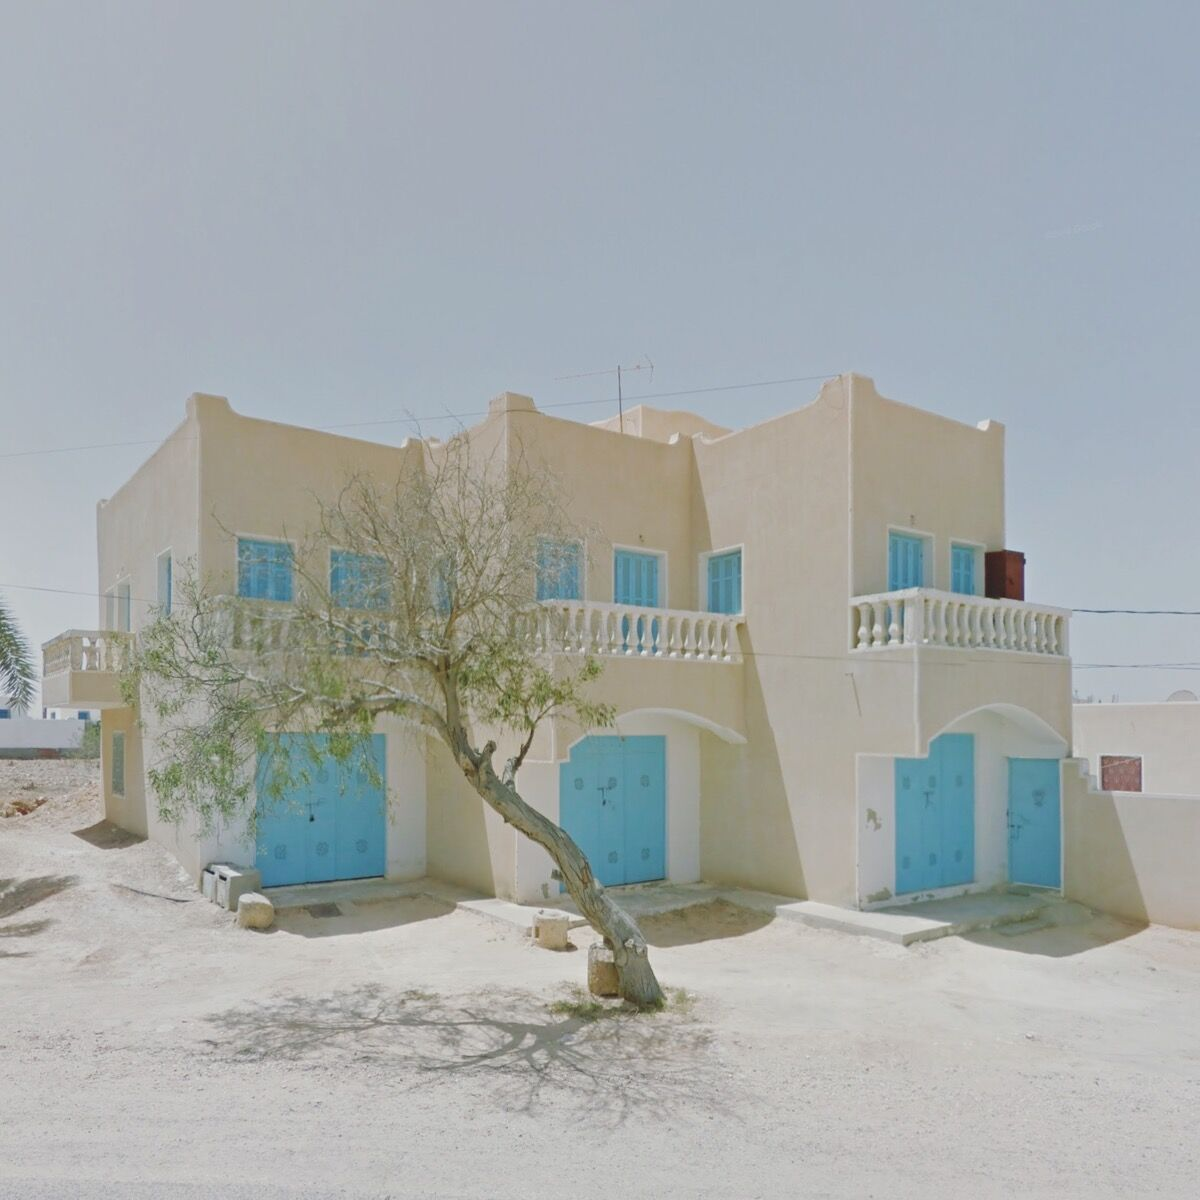 Guellaia, Medenine, Tunisia. Photograph by Jacqui Kenny via Google Street View.